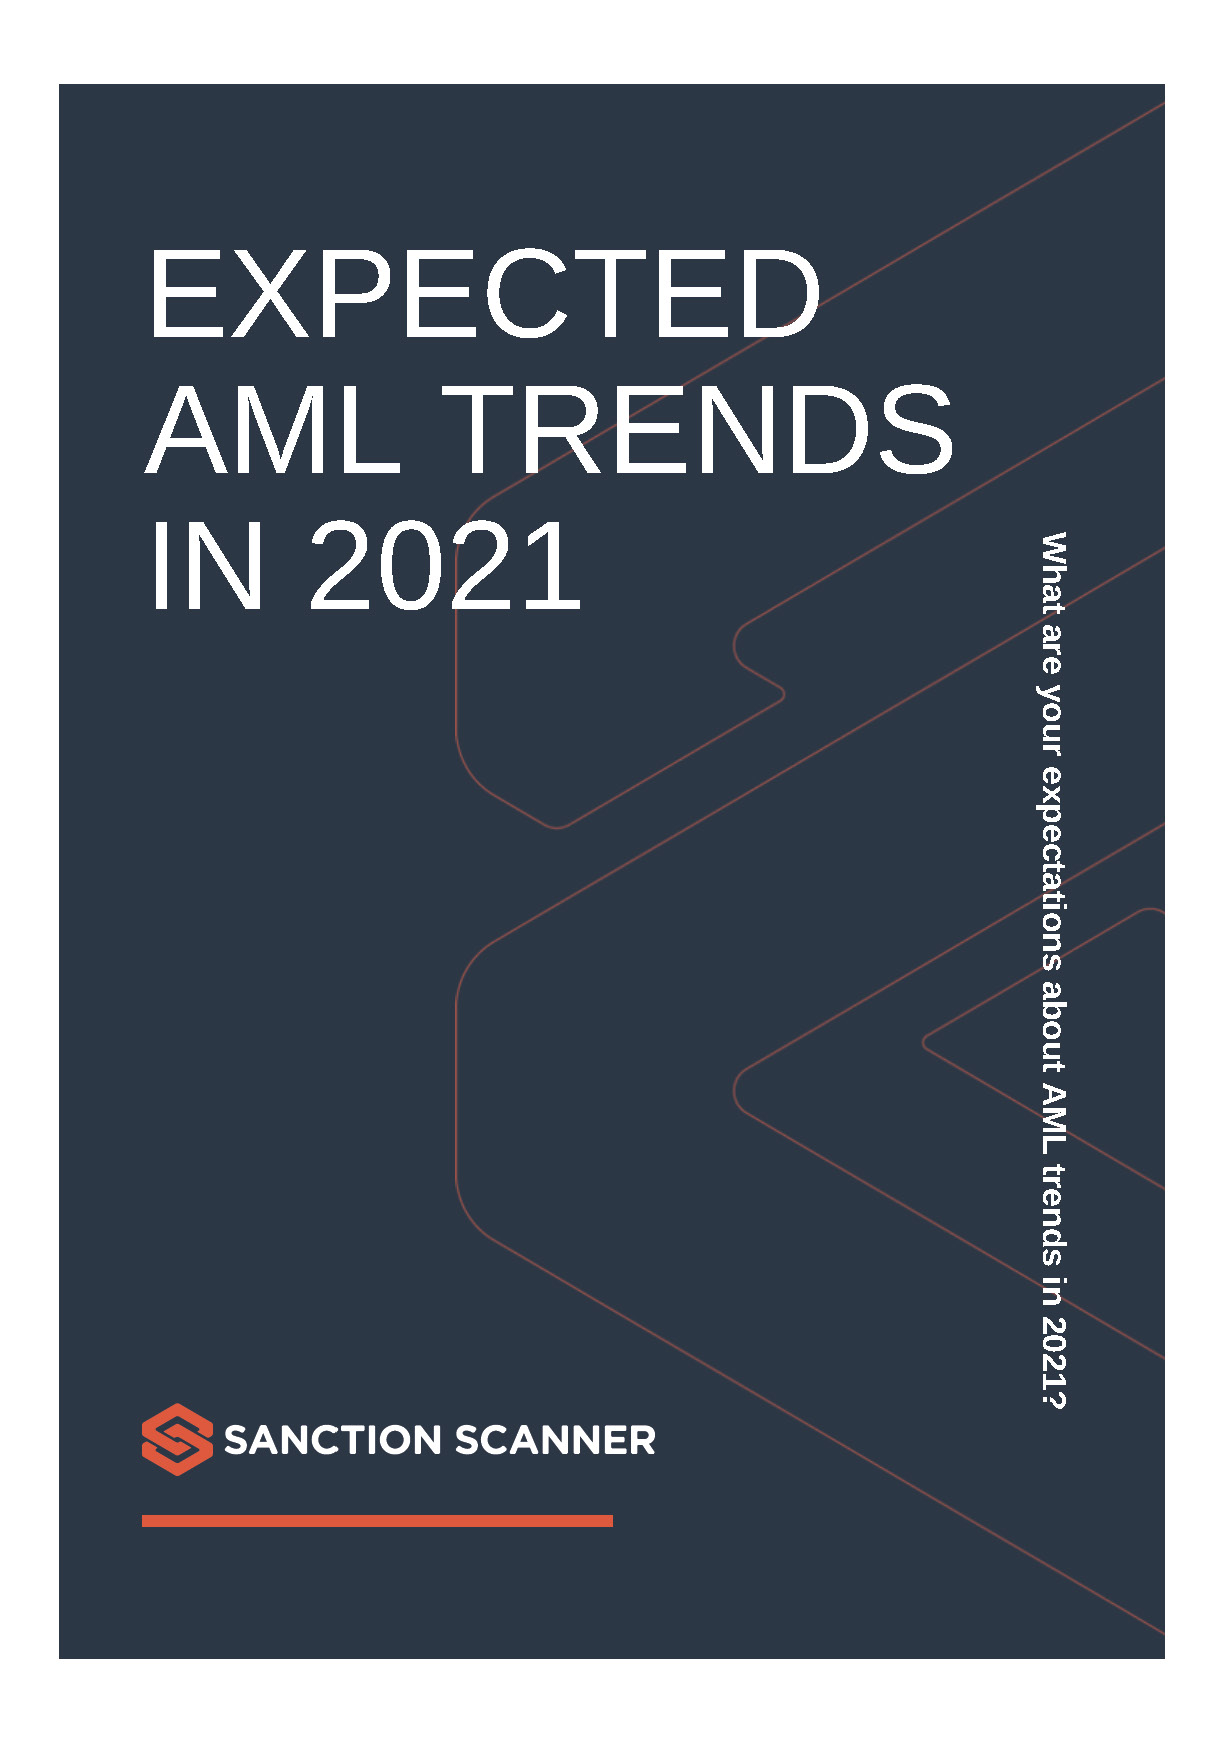 2021 AML Trend Foresights for 28 Experts from 17 Different Countries 42